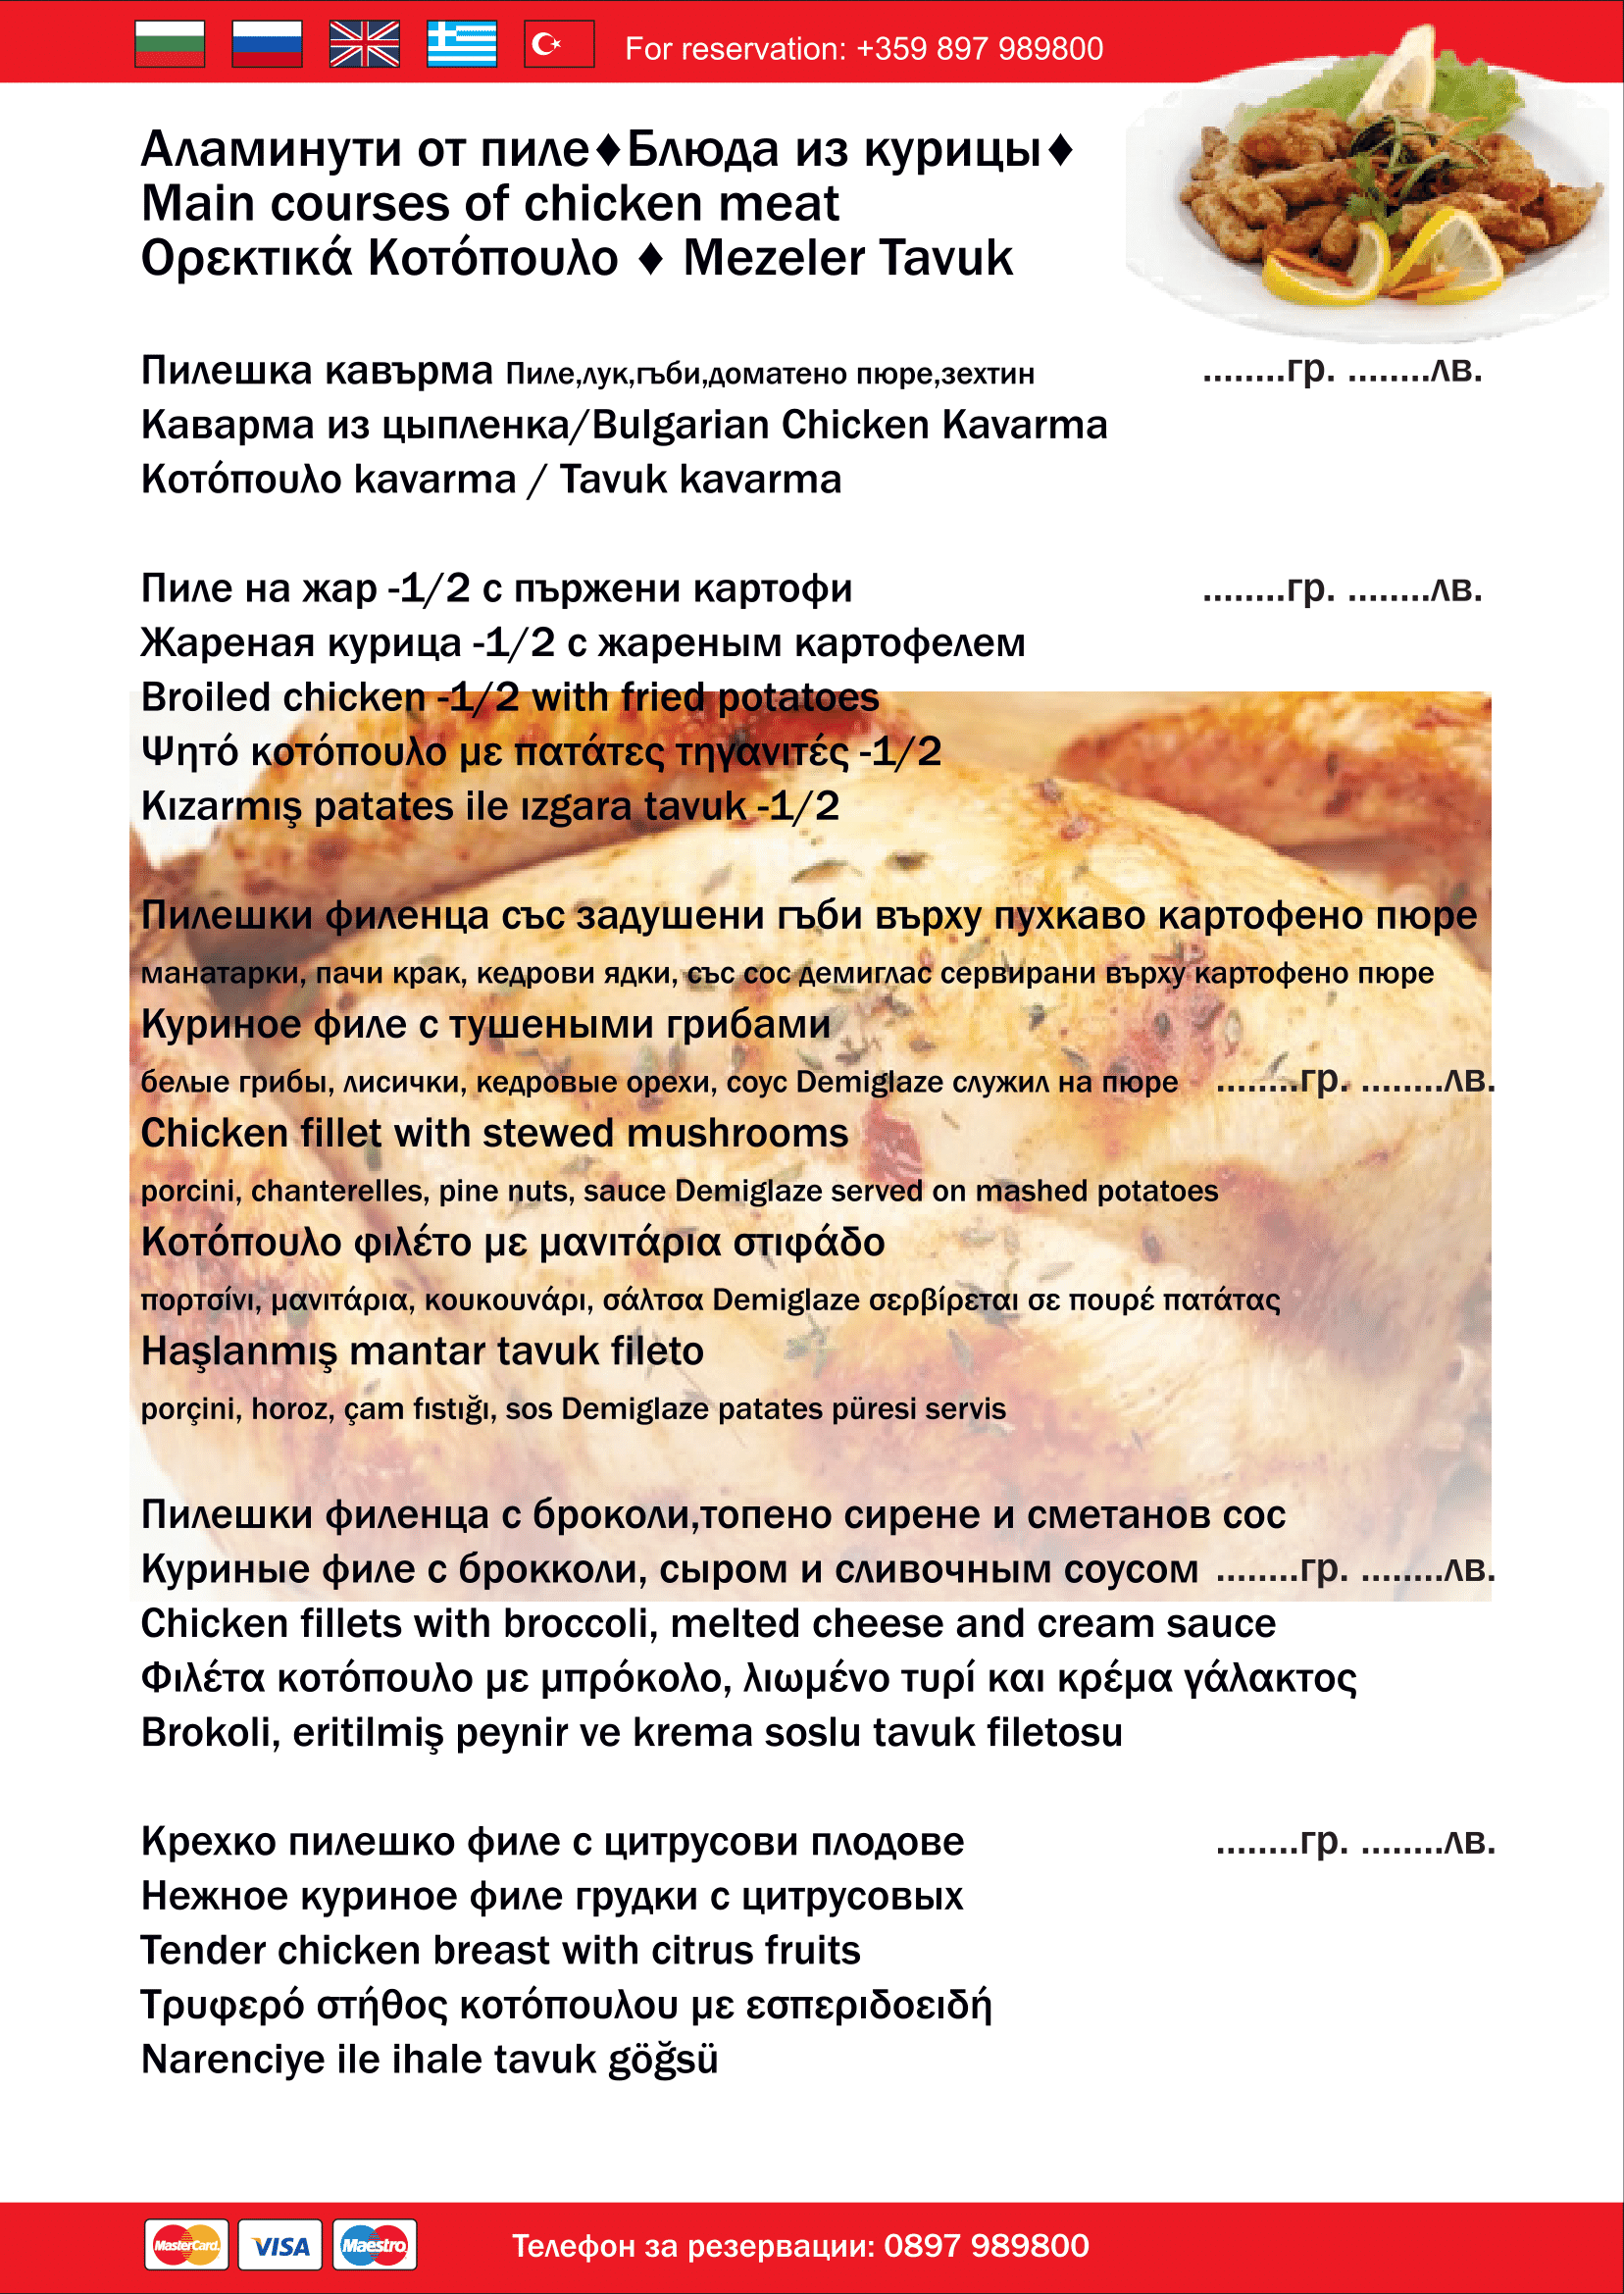 menu_restaurant_restorant_panorama_pamporovo_12